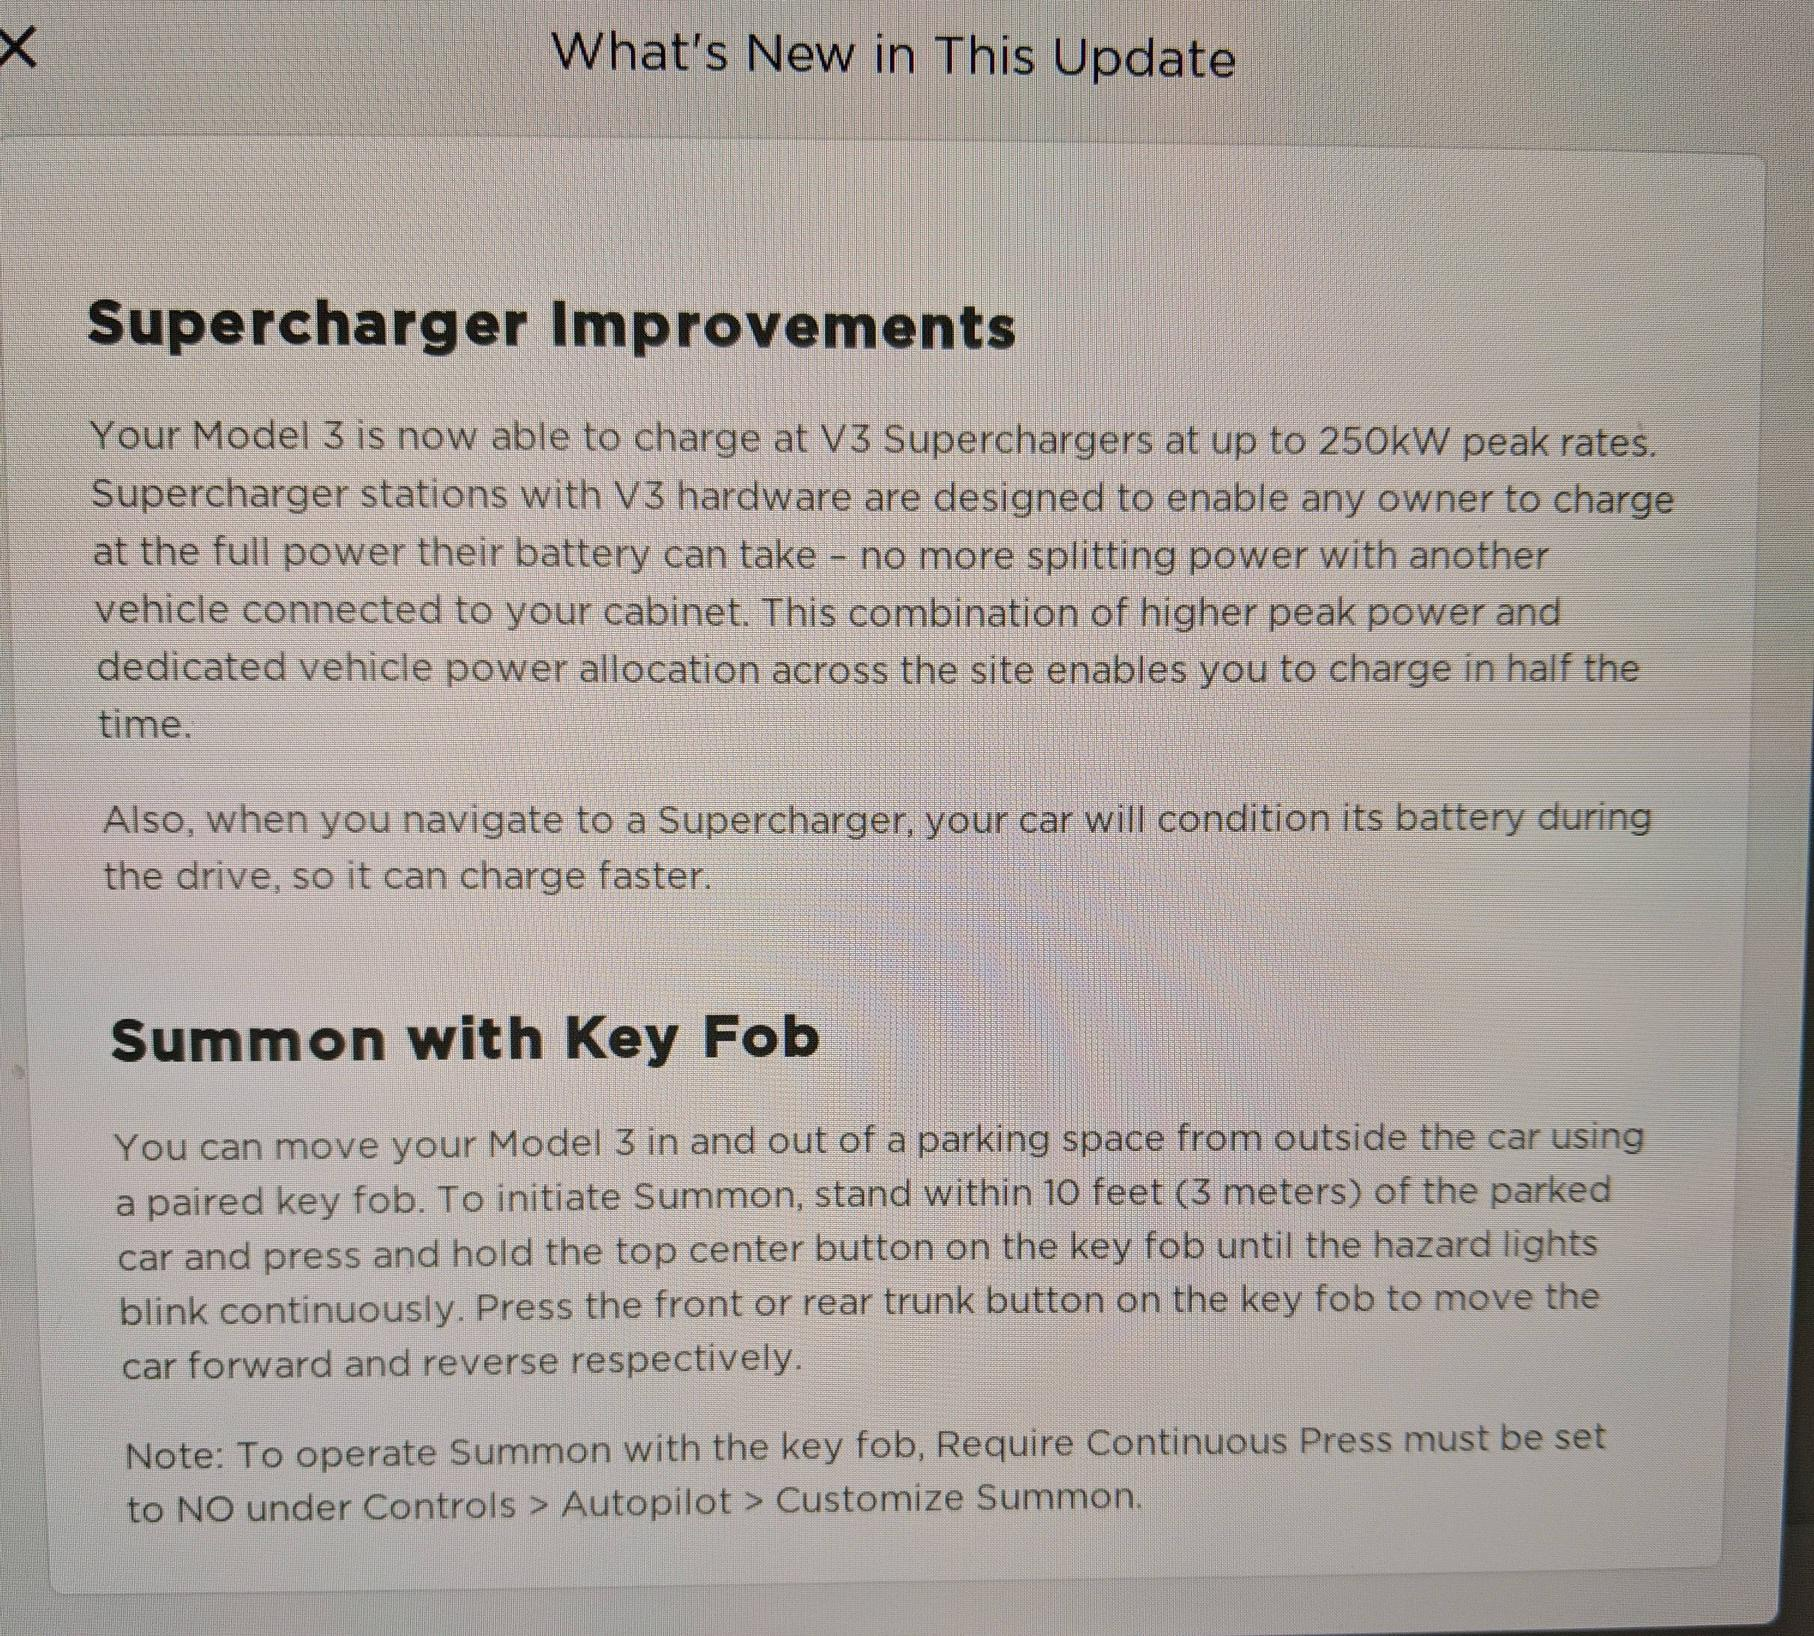 2019.7.11 release notes for Tesla Model 3 (Mar, 2019)